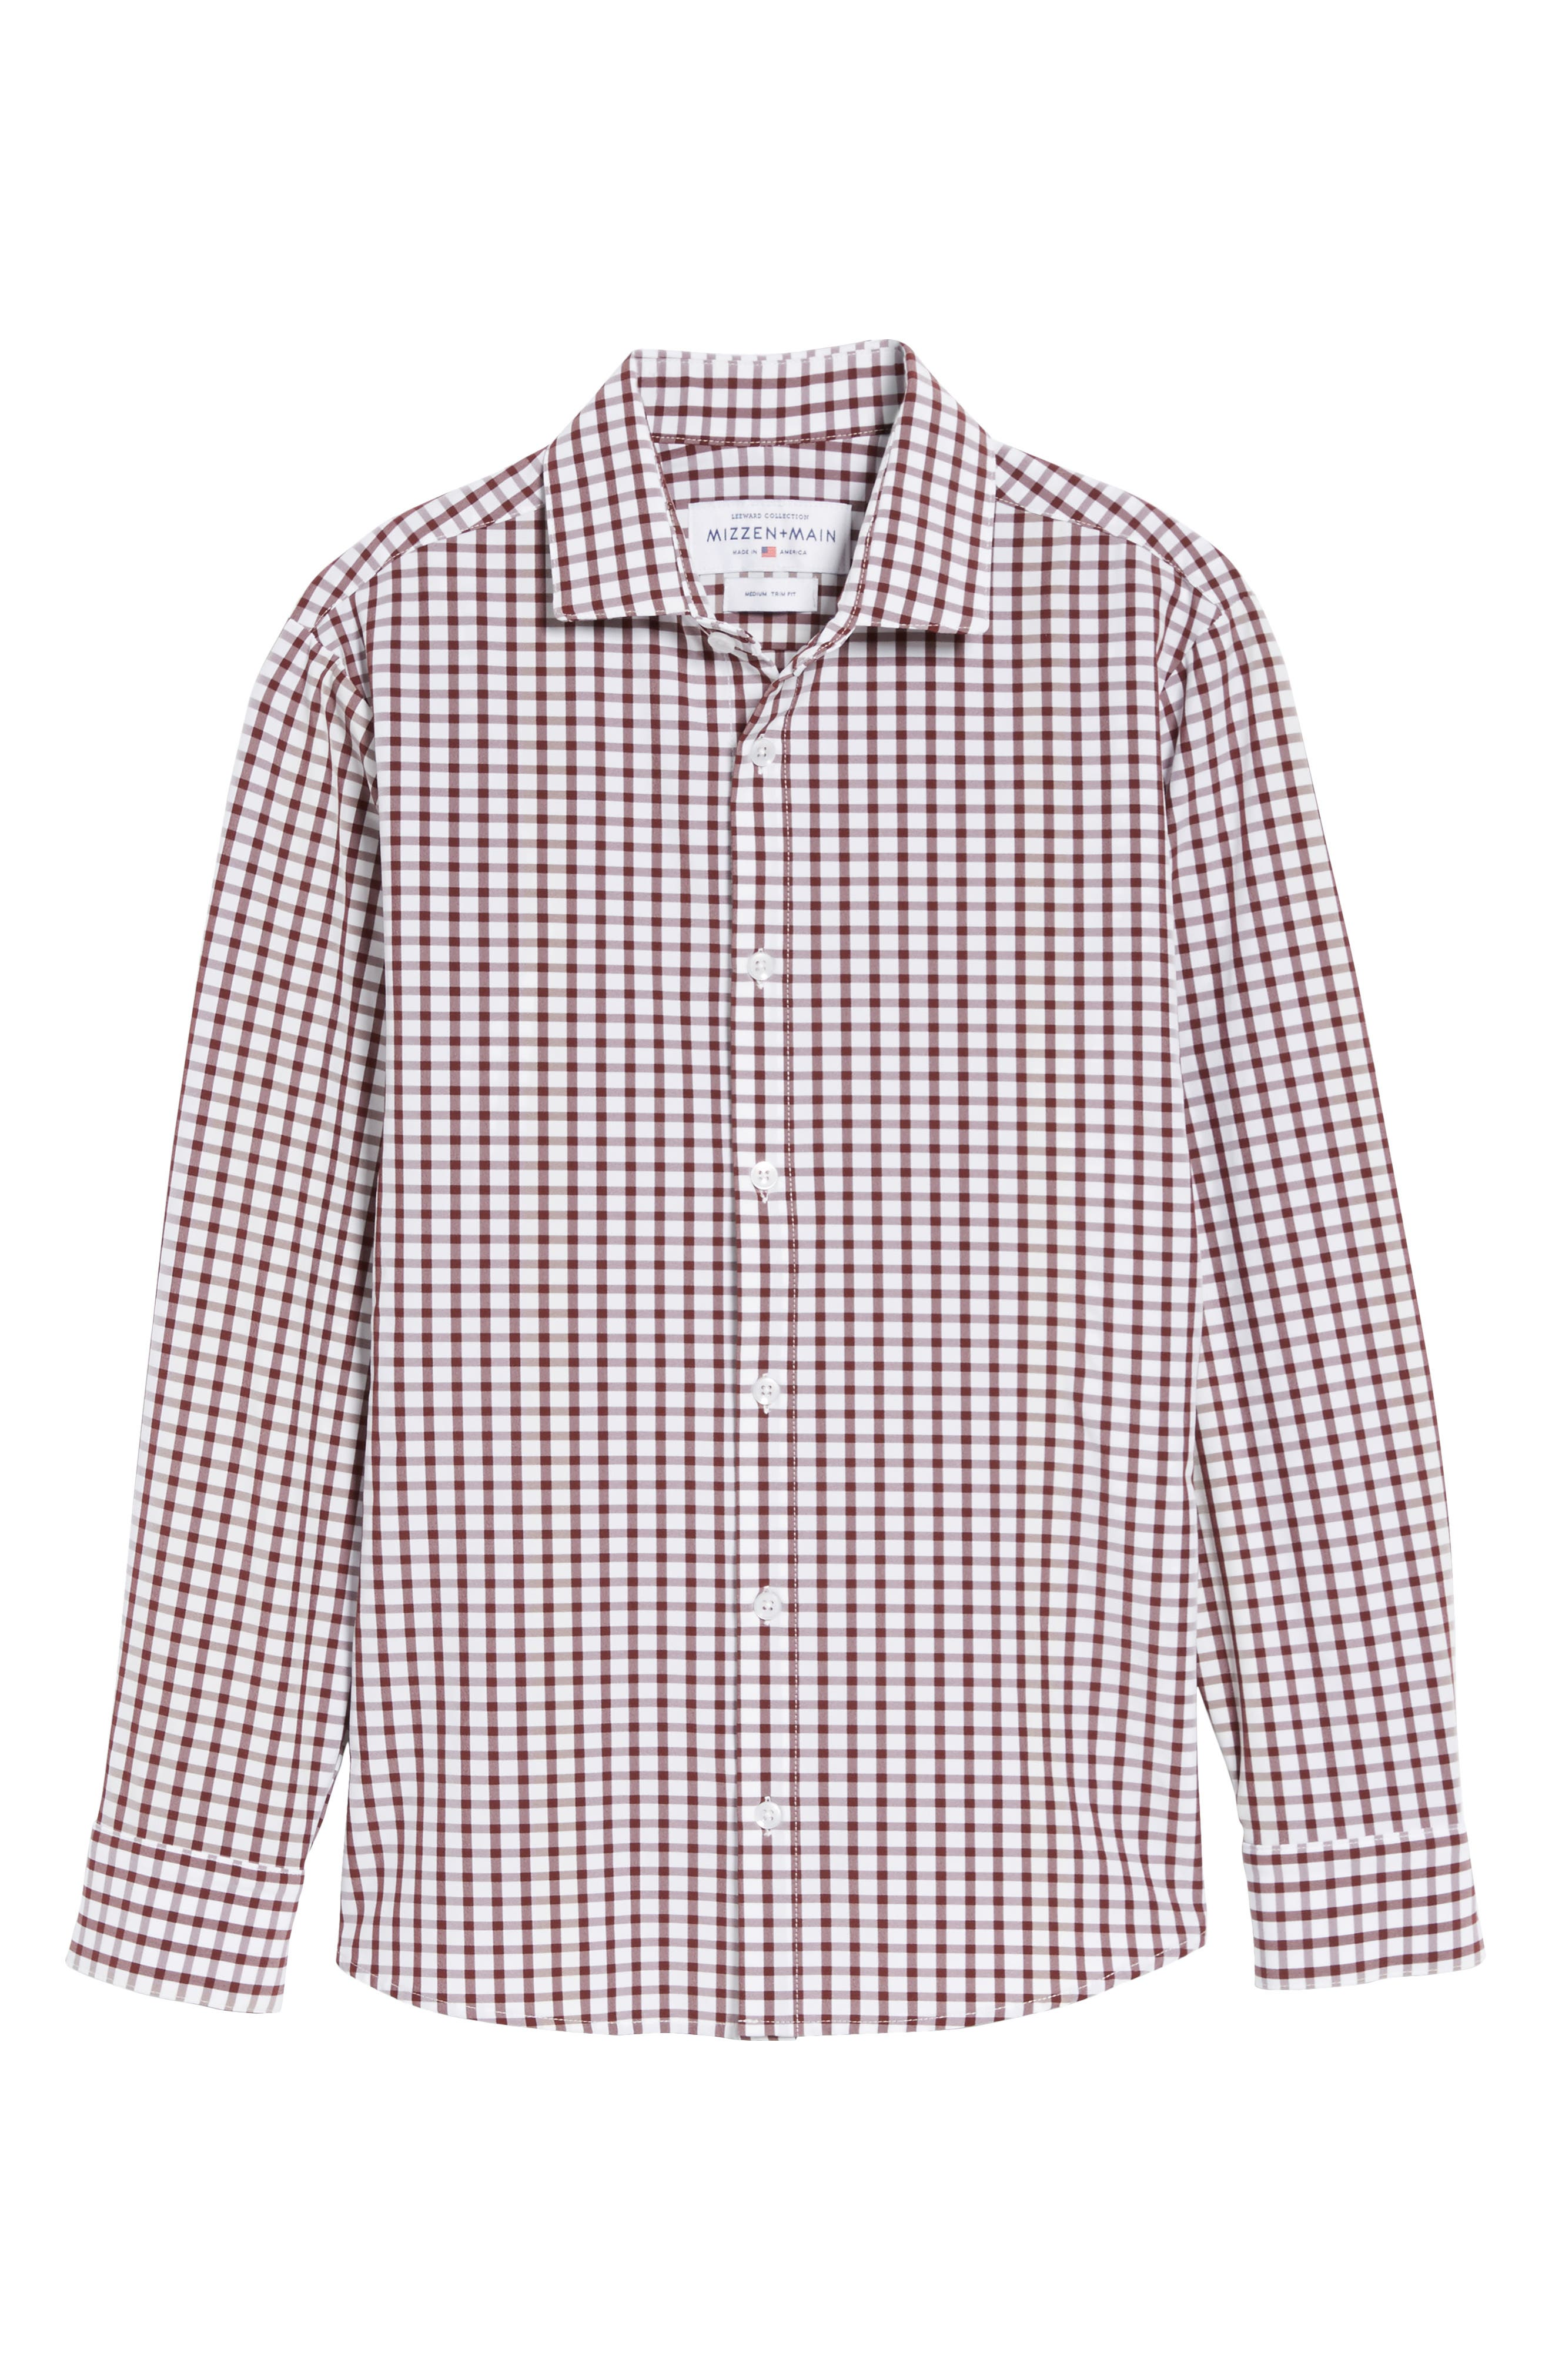 Cooper Check Performance Sport Shirt,                             Alternate thumbnail 6, color,                             600